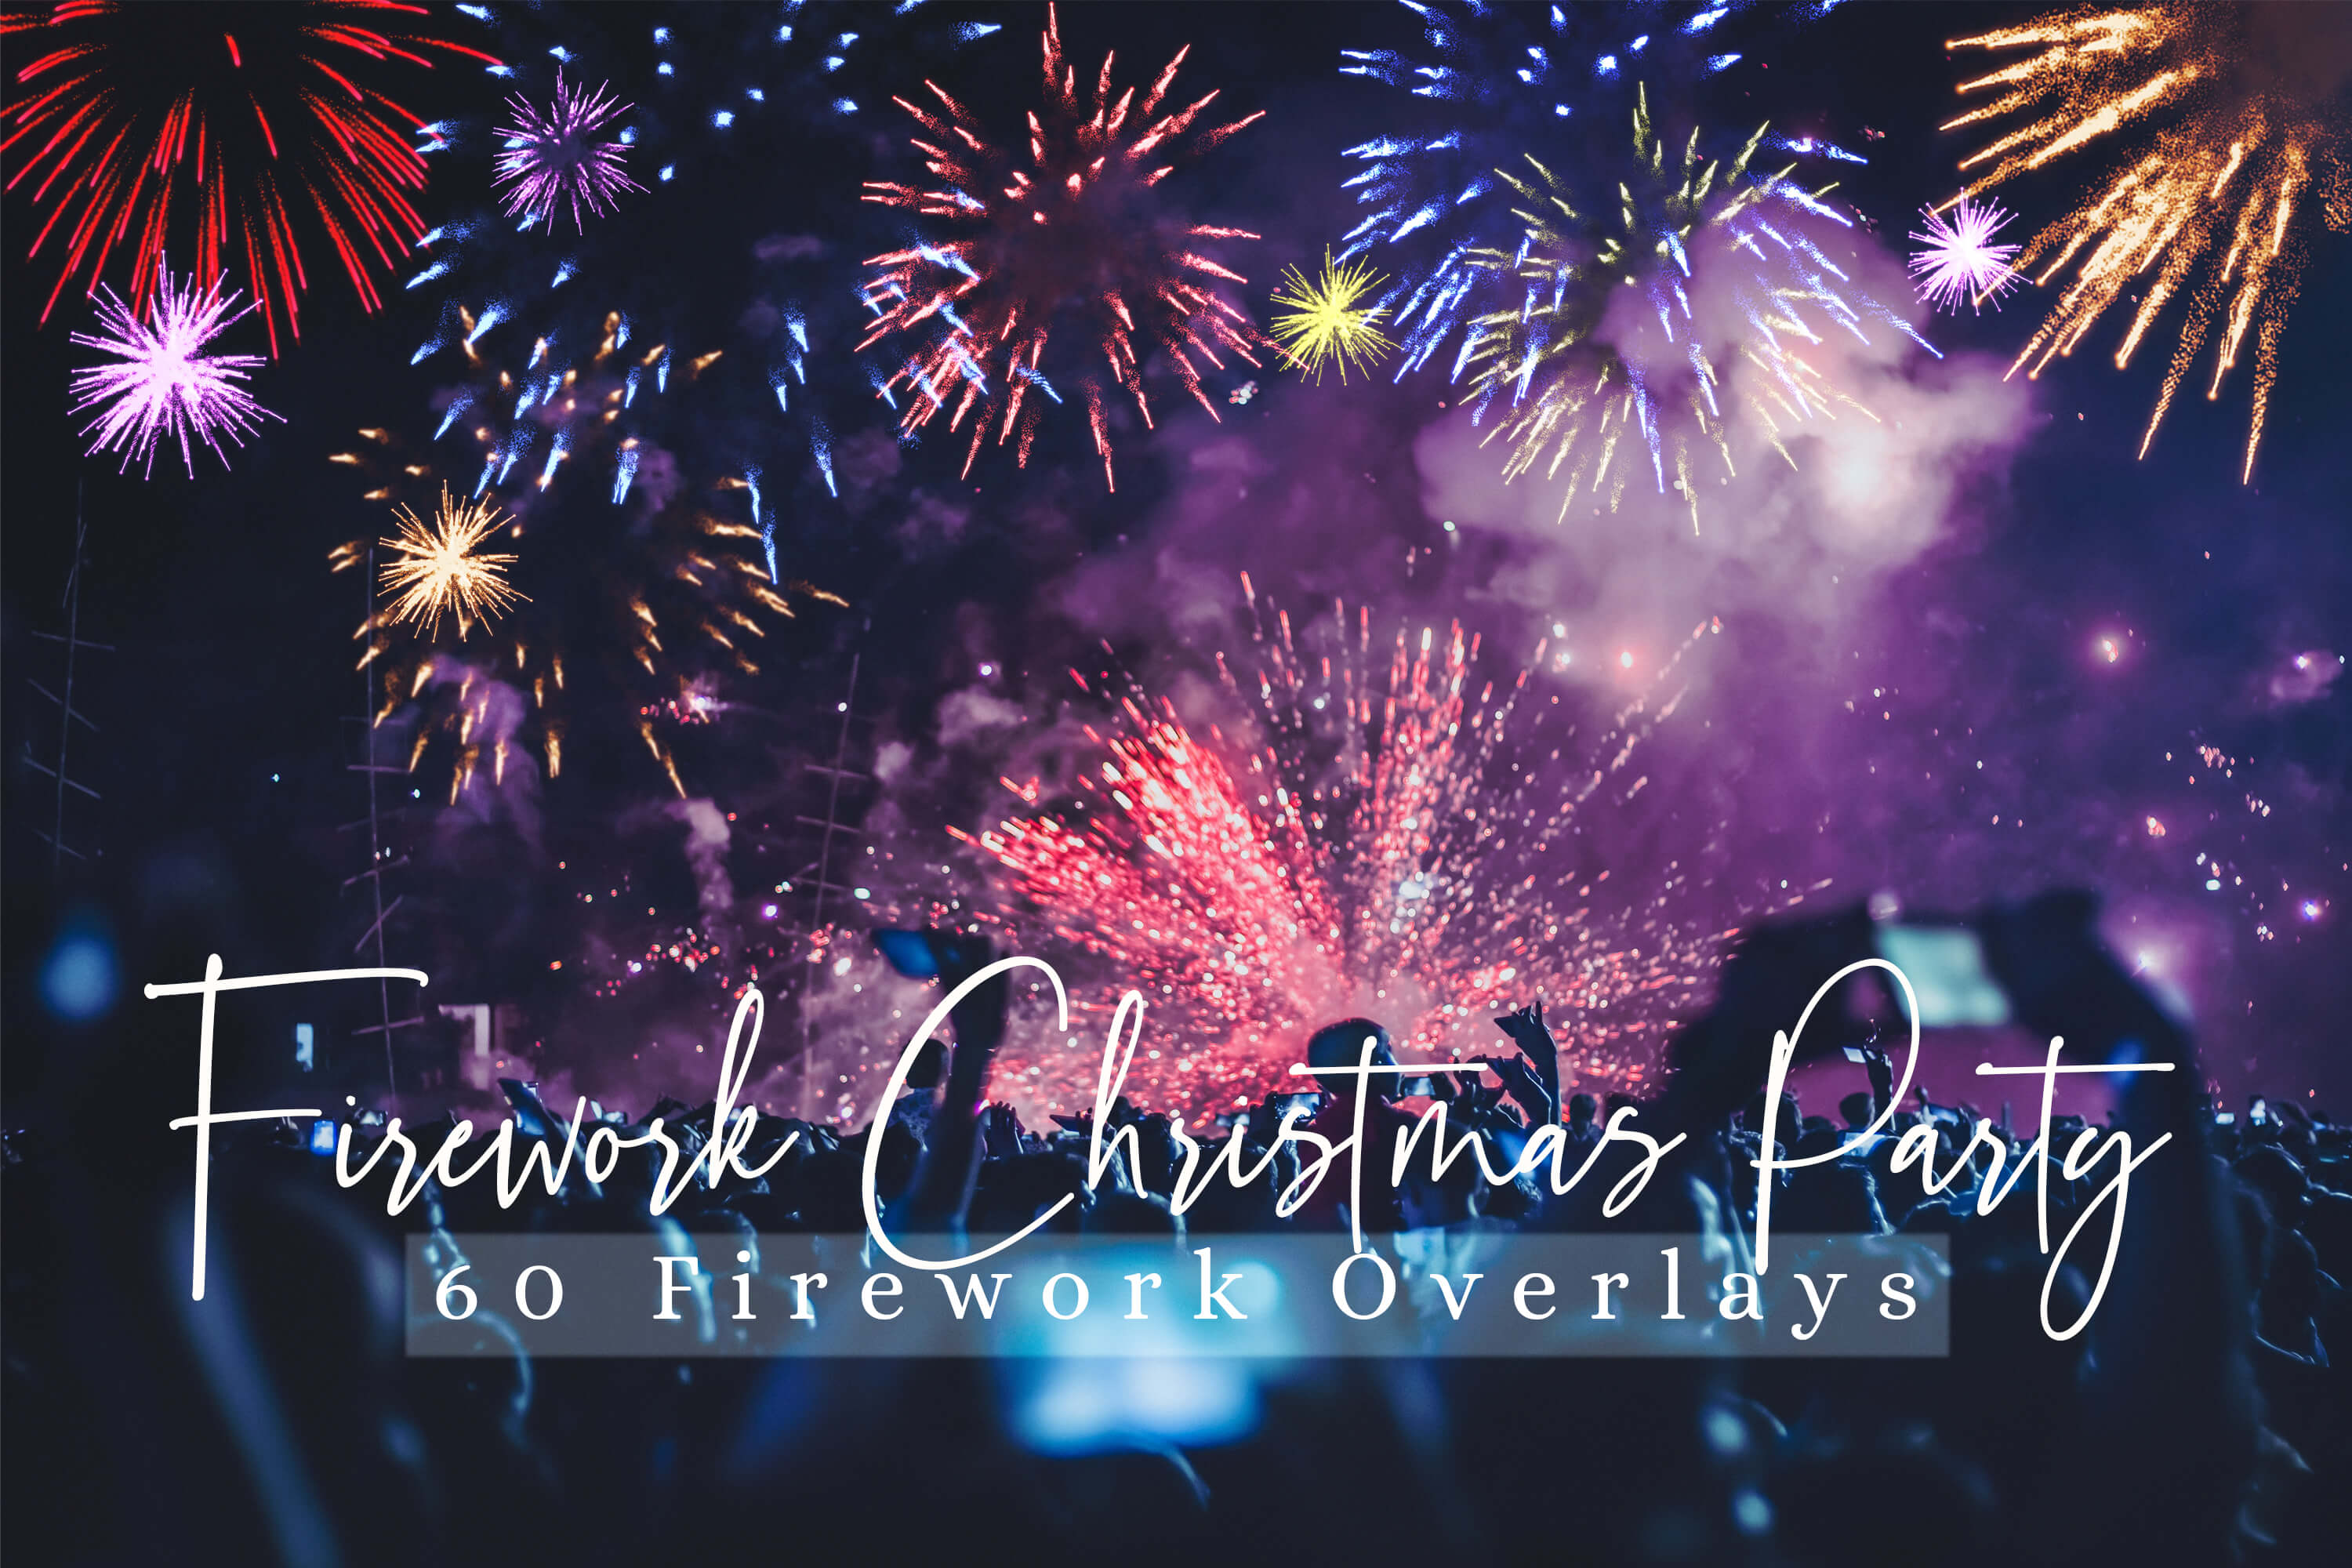 60 Firework Christmas Party Overlays example image 1